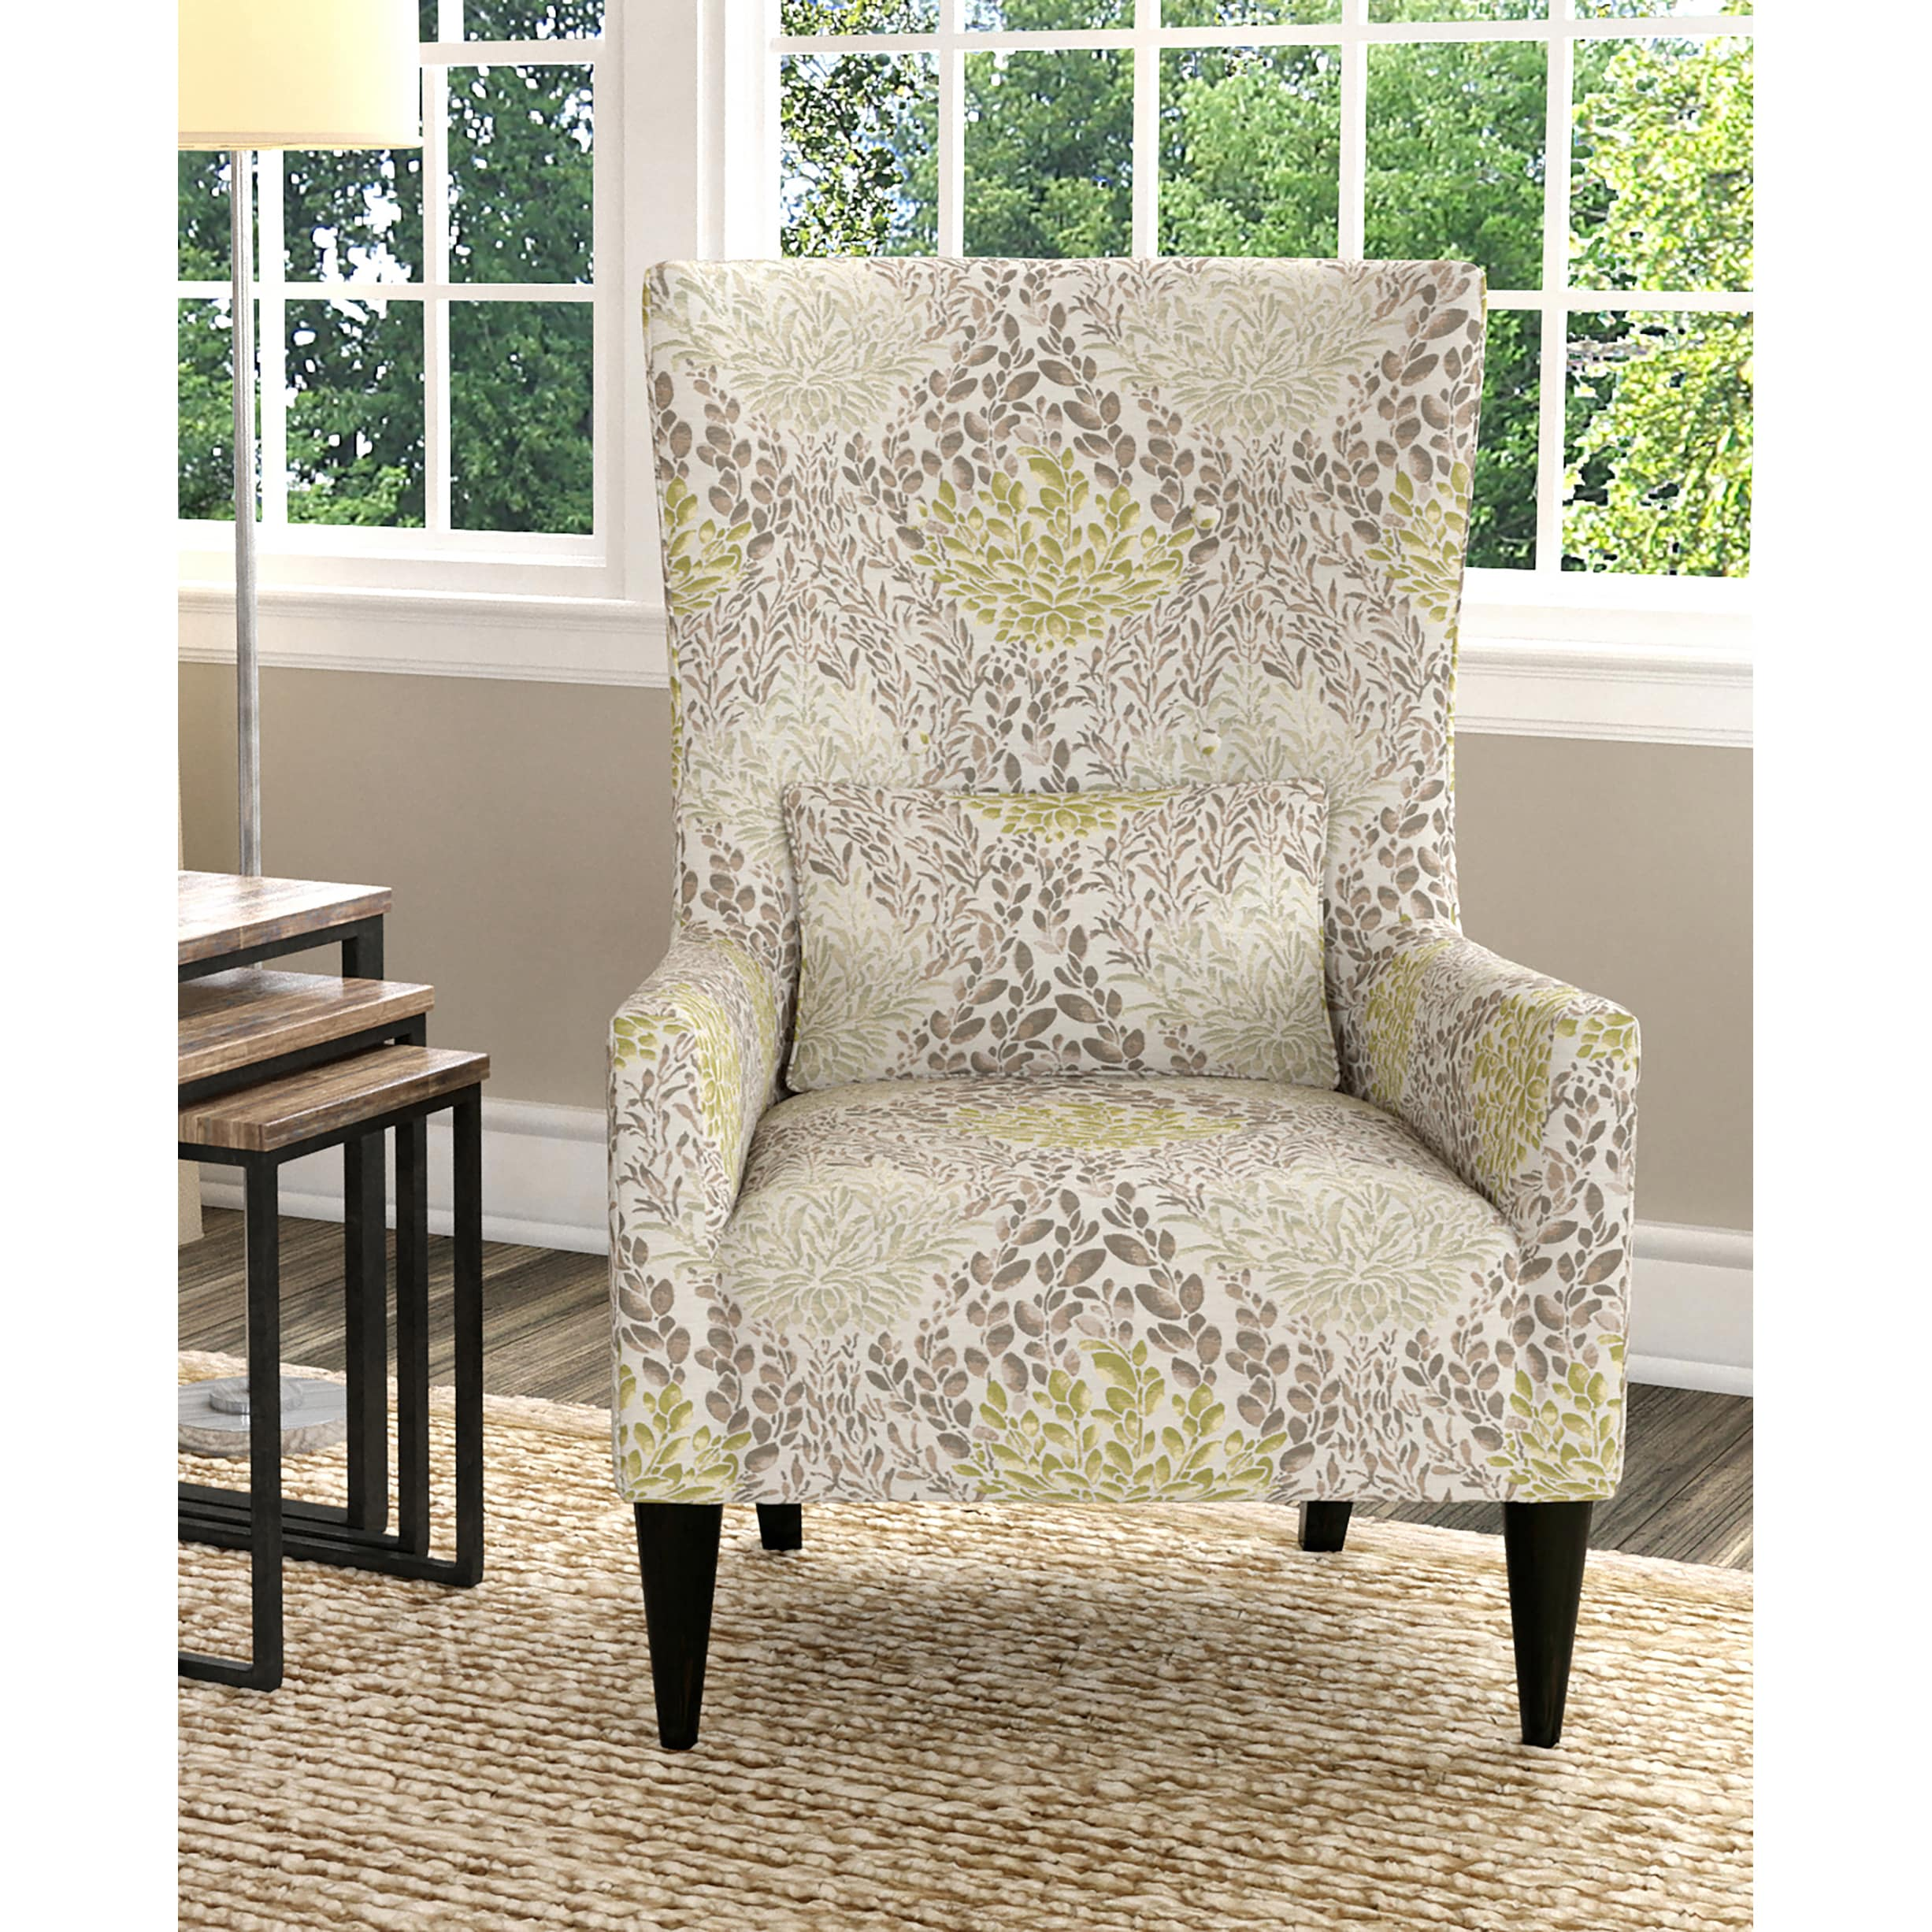 Shop Handy Living Venecia Yellow Floral High Back Wing Chair - Free ...